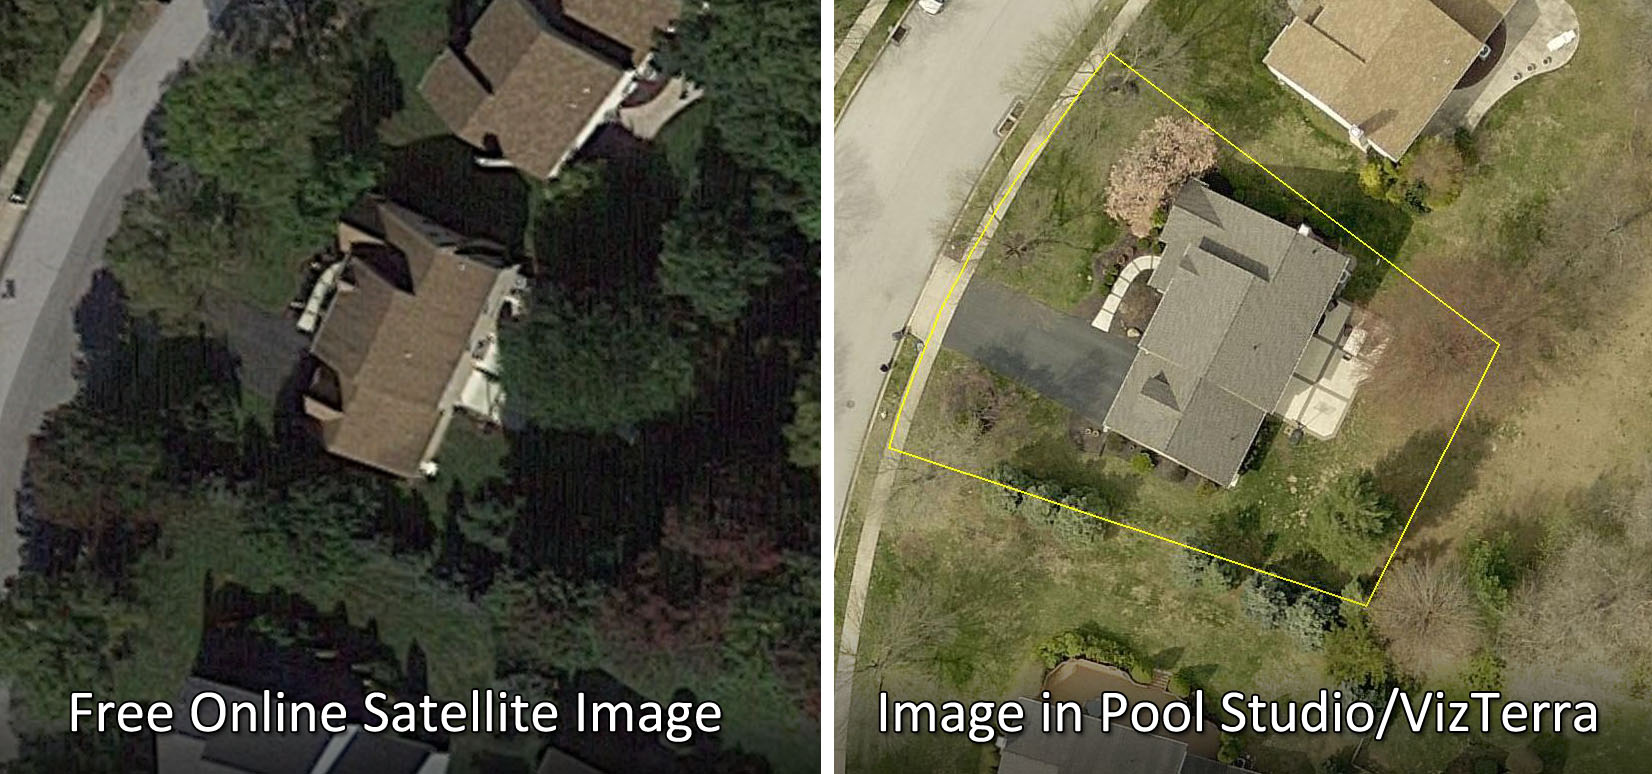 Landscape Design Software Aerial Image